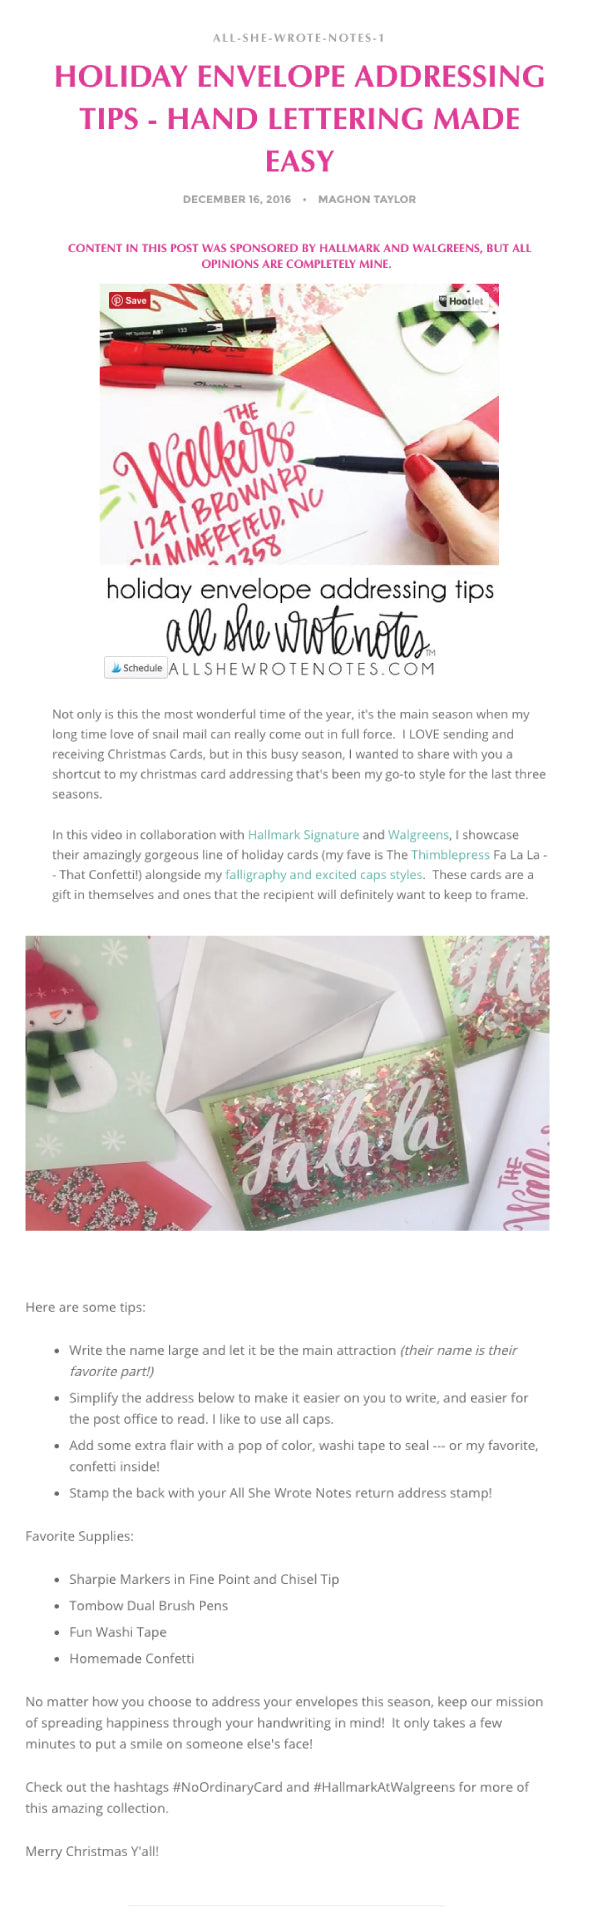 All She Wrote Notes | December 2016